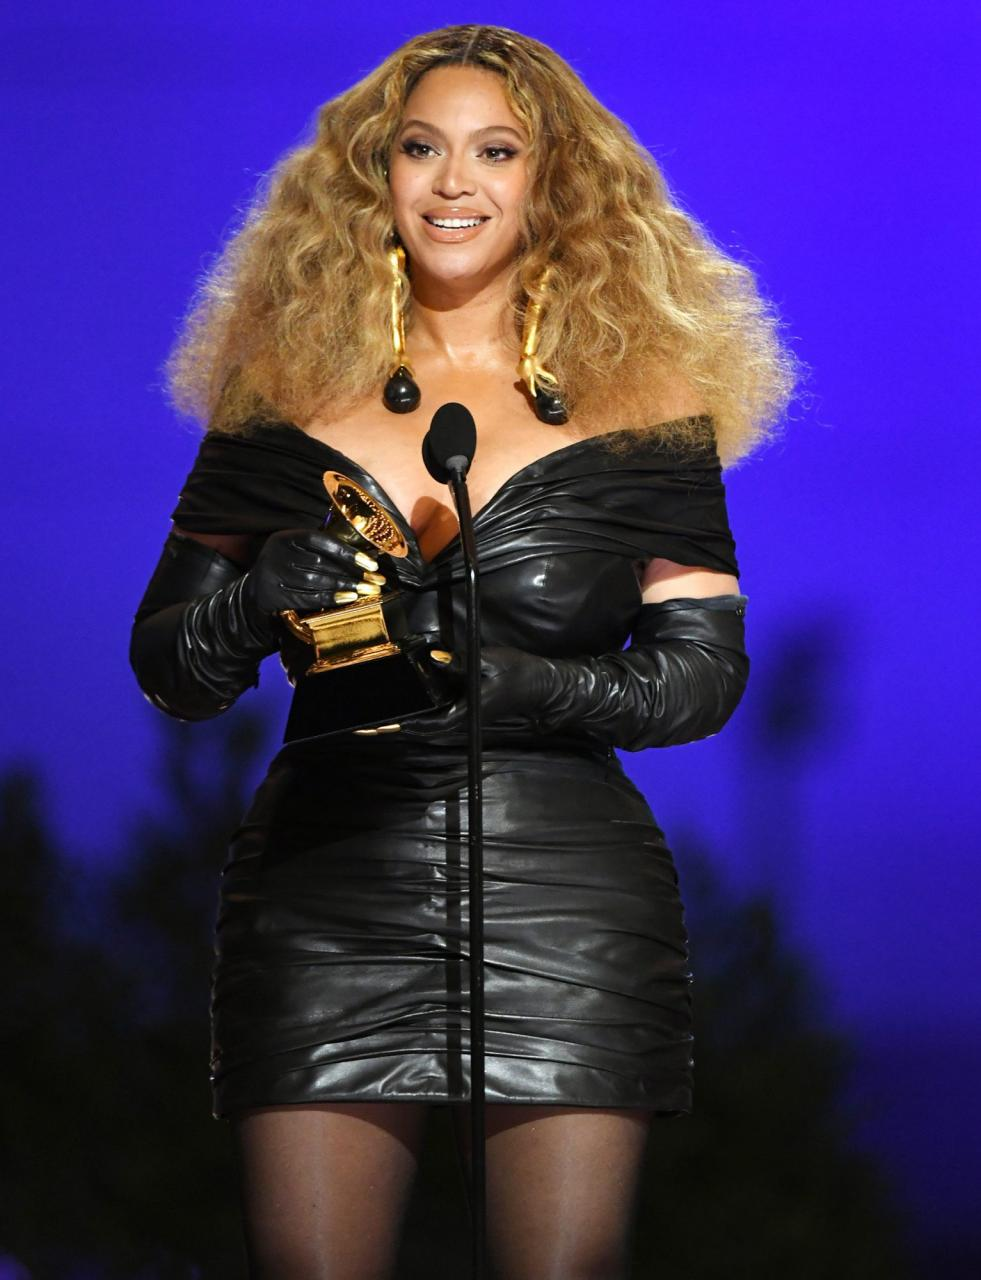 Beyonc? makes history with 28th Grammy win, becomes the most-decorated female artist of all time